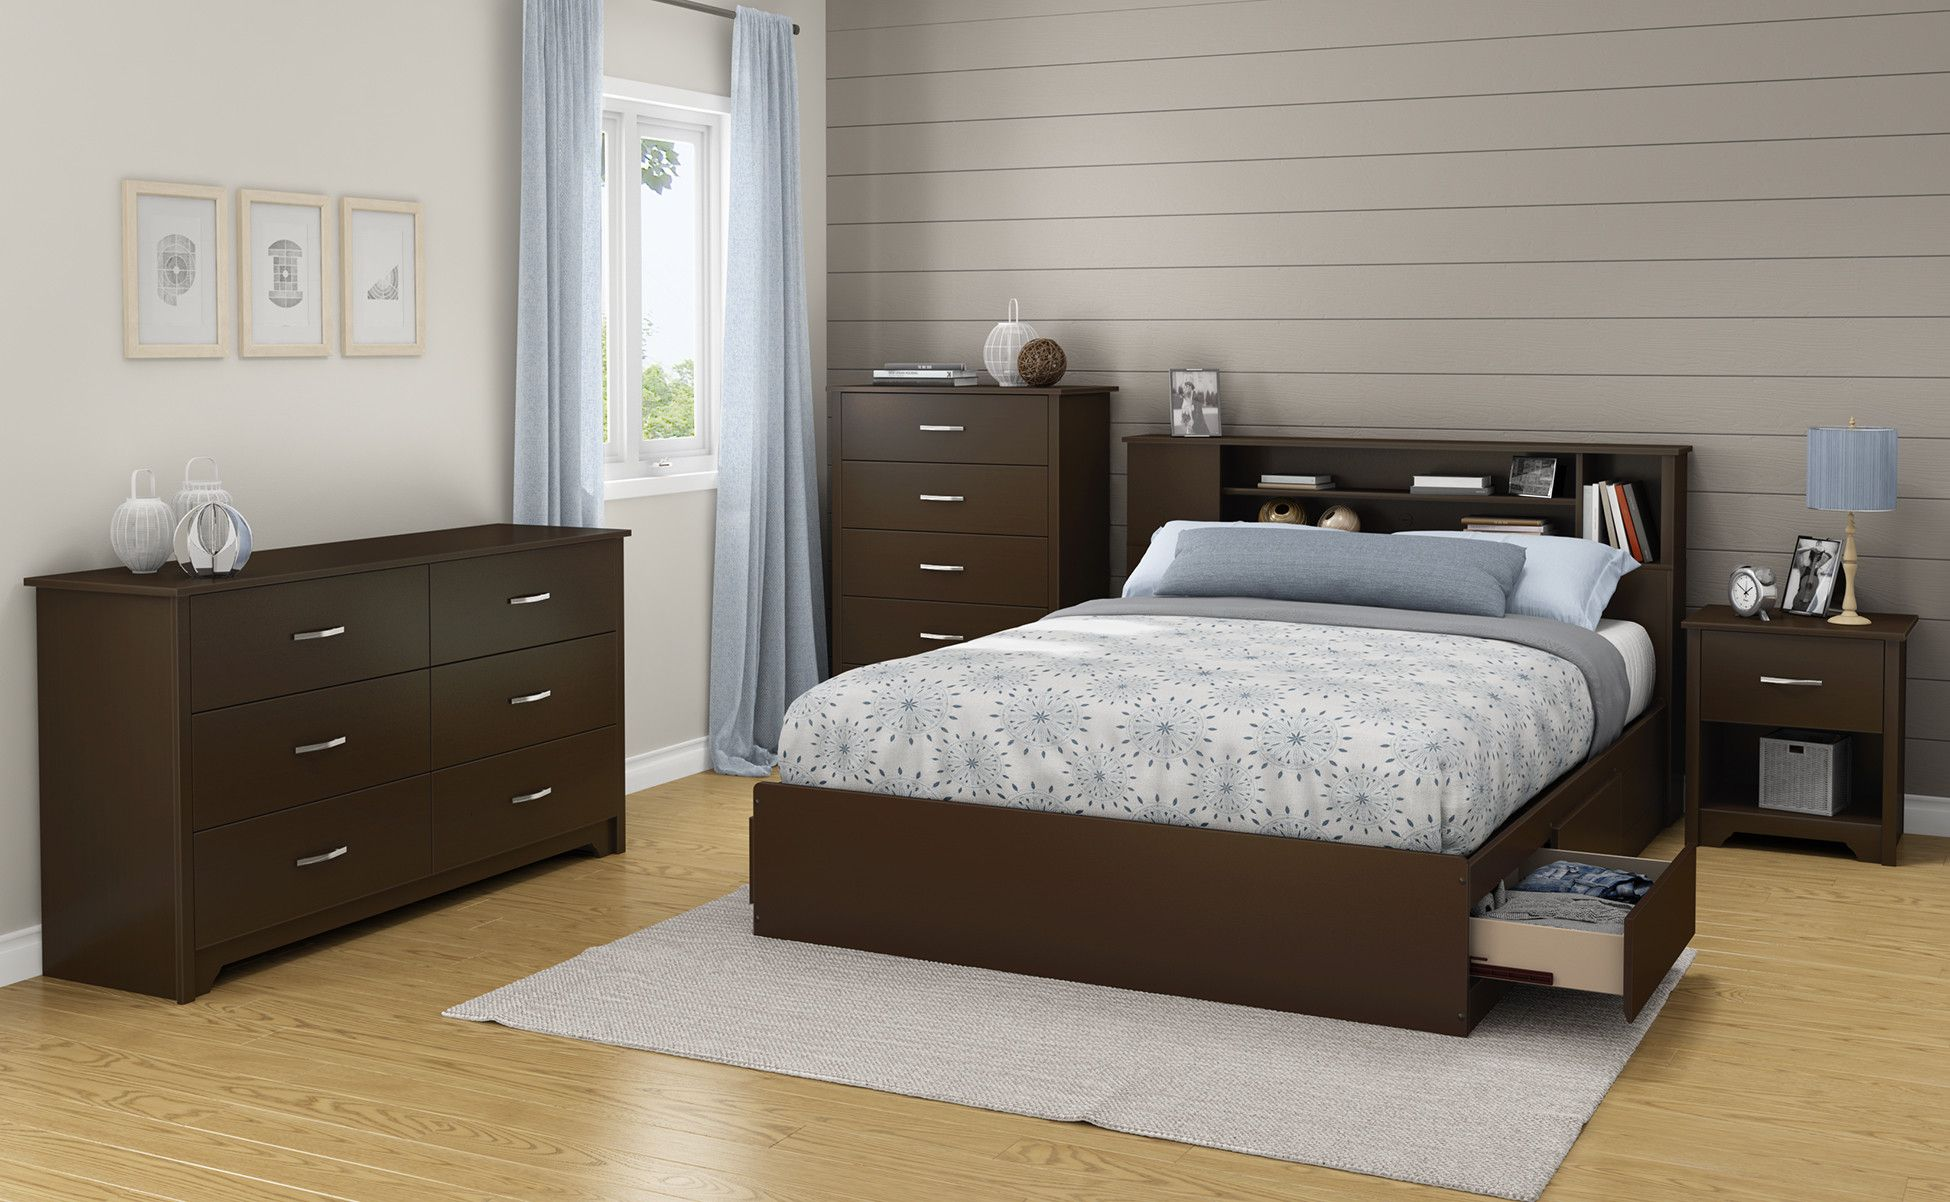 fusion 40 25in tall queen platform bed platform beds bed reviews